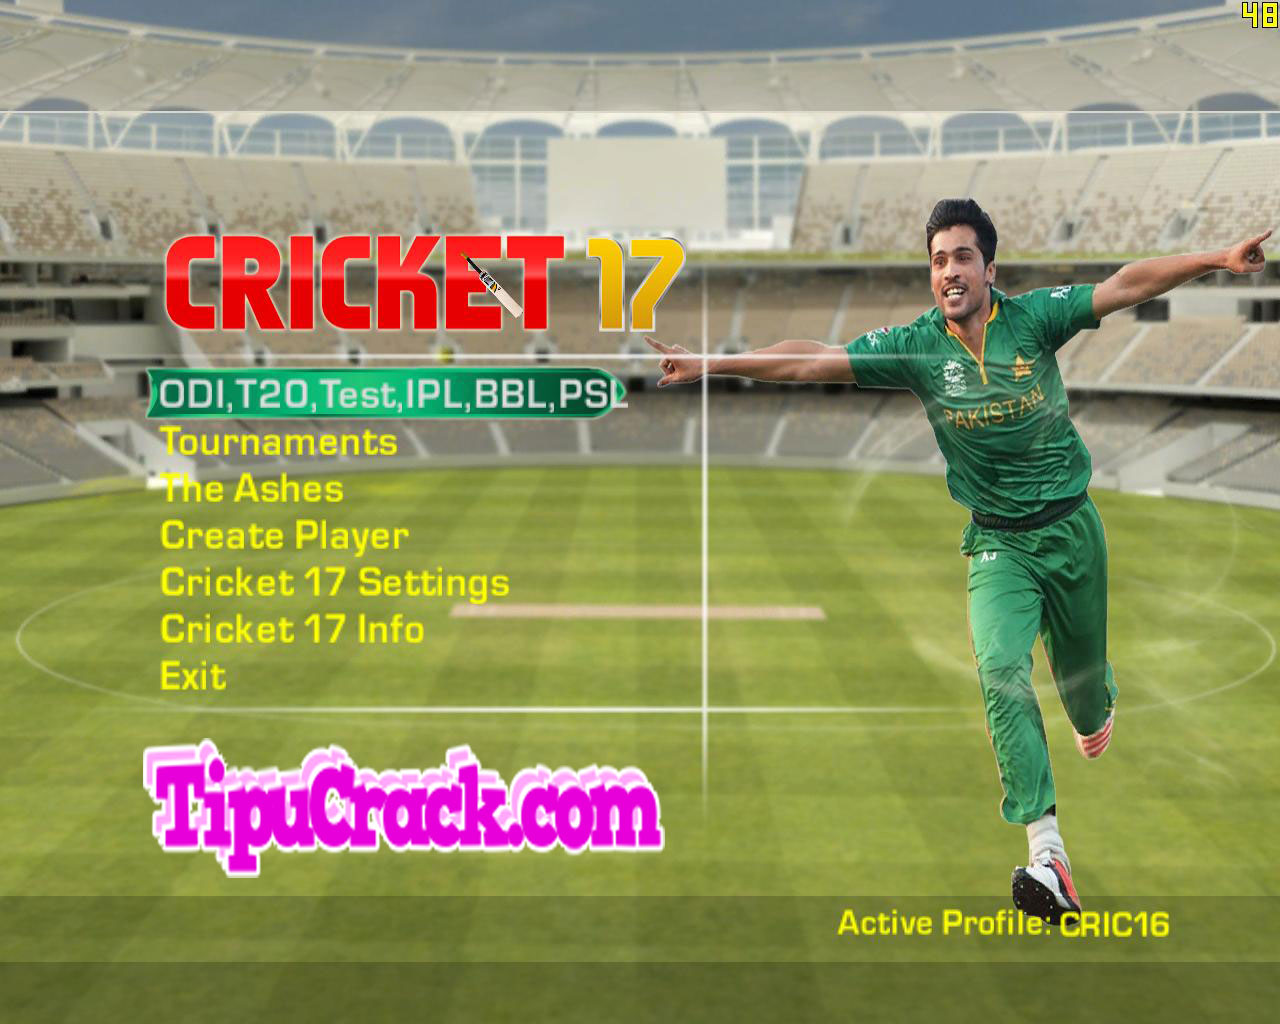 an overview of the sport of cricket To view video, click on the post title this is cricket: 4 min overview always wanted to know what cricket was, but didn't have anyone to ask well here is a 4 minute overview of the sport.